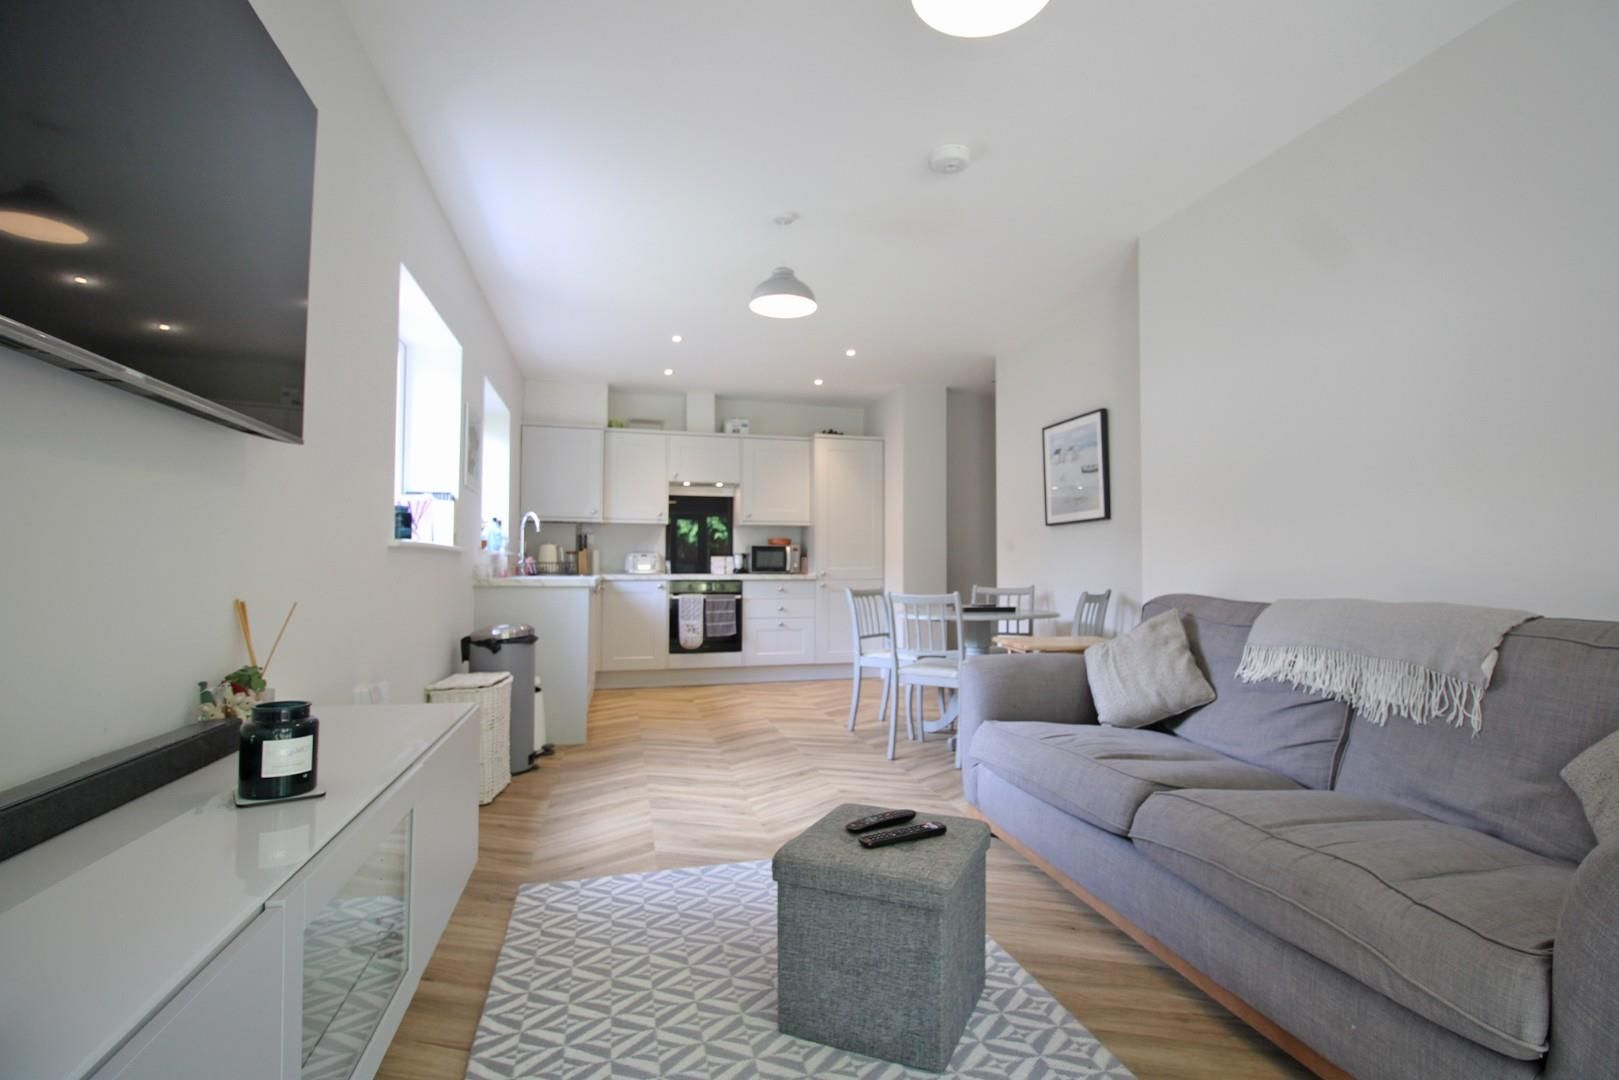 2 bed apartment to rent 1